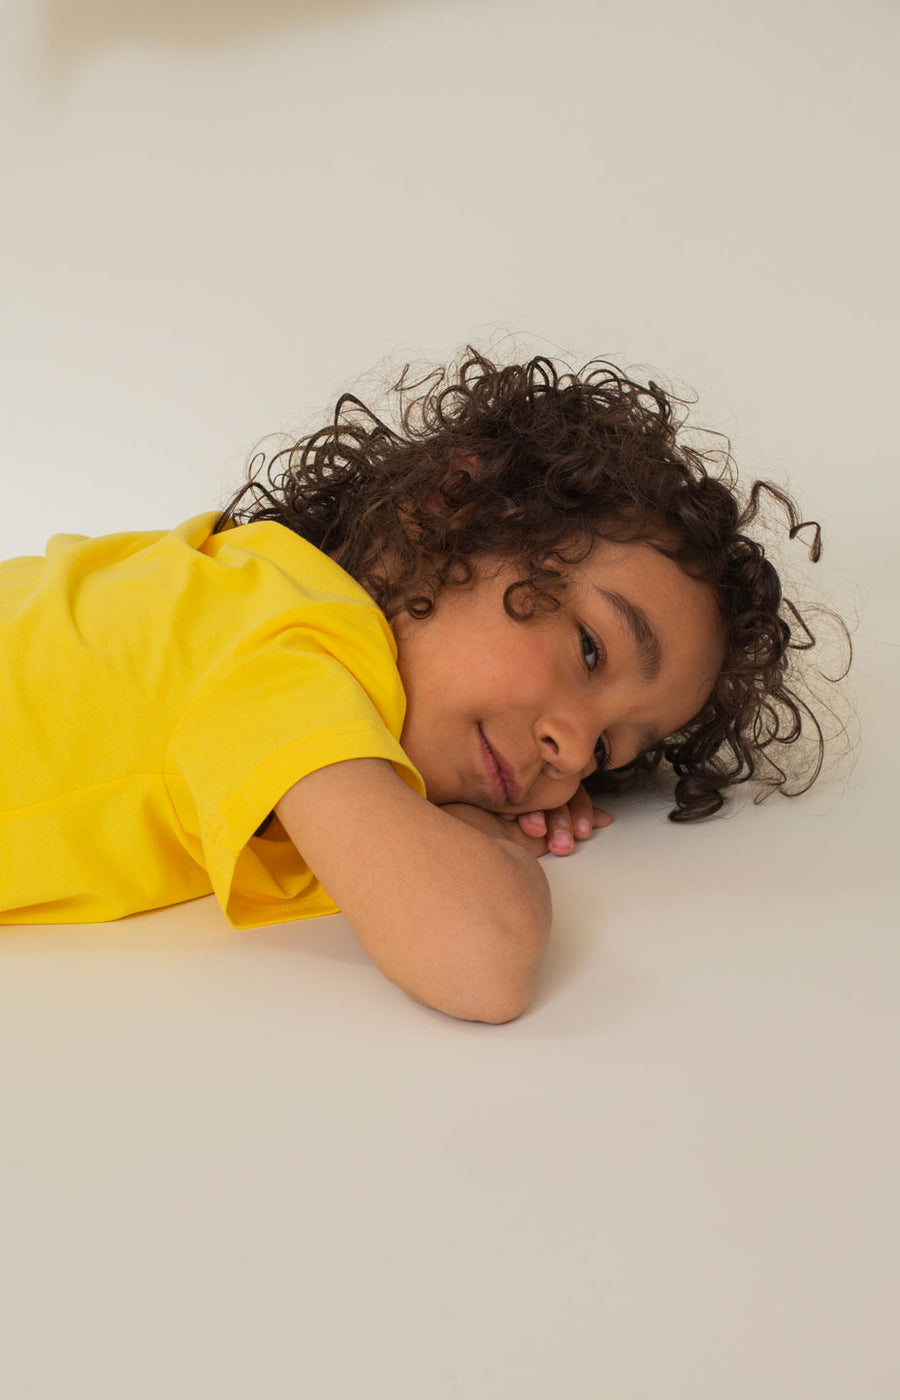 Rahkasammal kid's T-shirt sunshine yellow - Tops - TAUKO - TAUKODESIGN